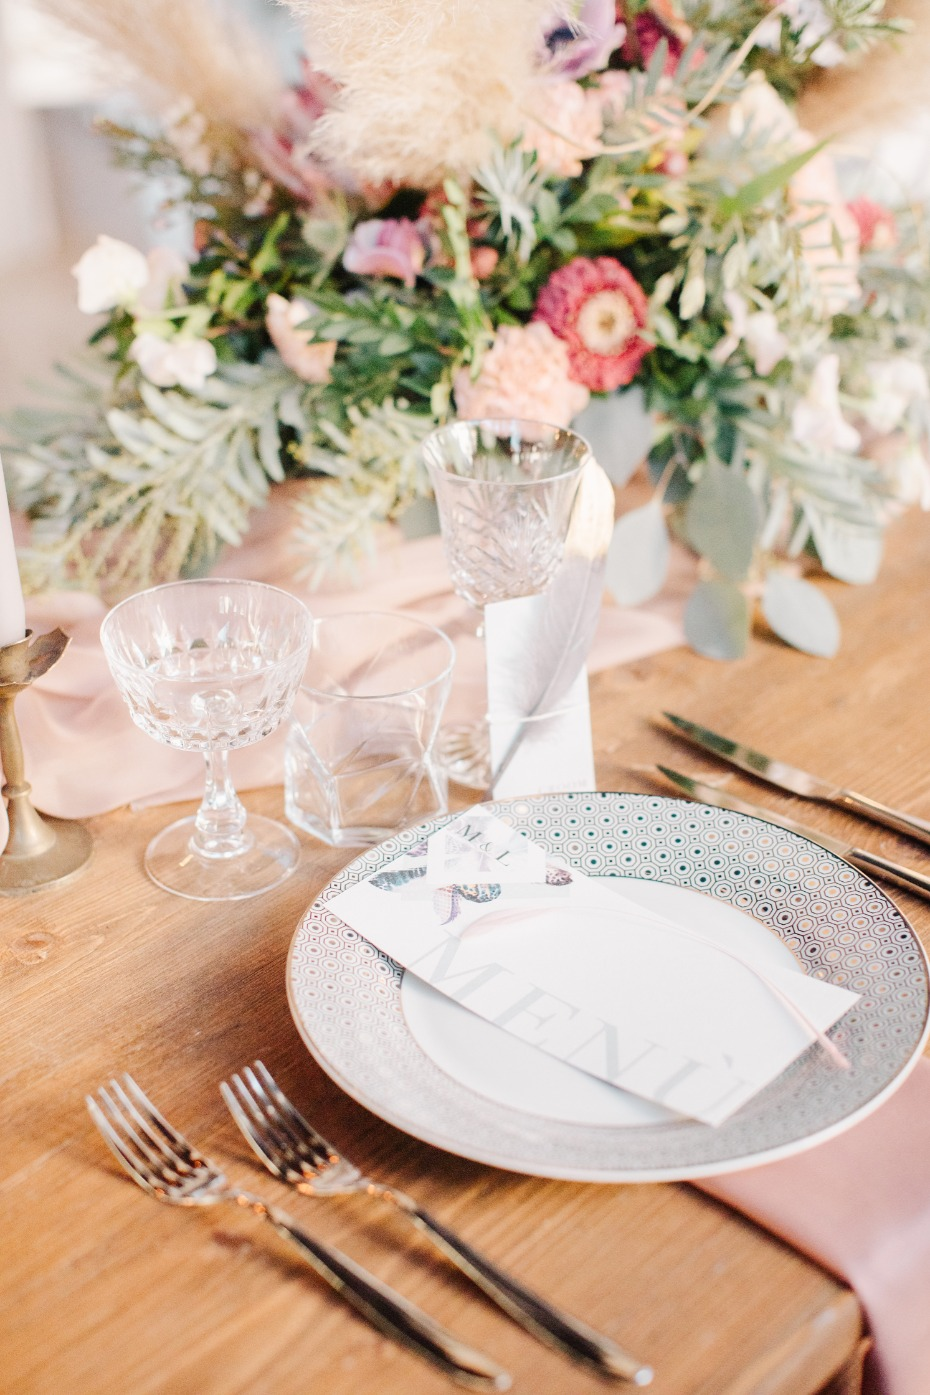 Clean and modern place setting